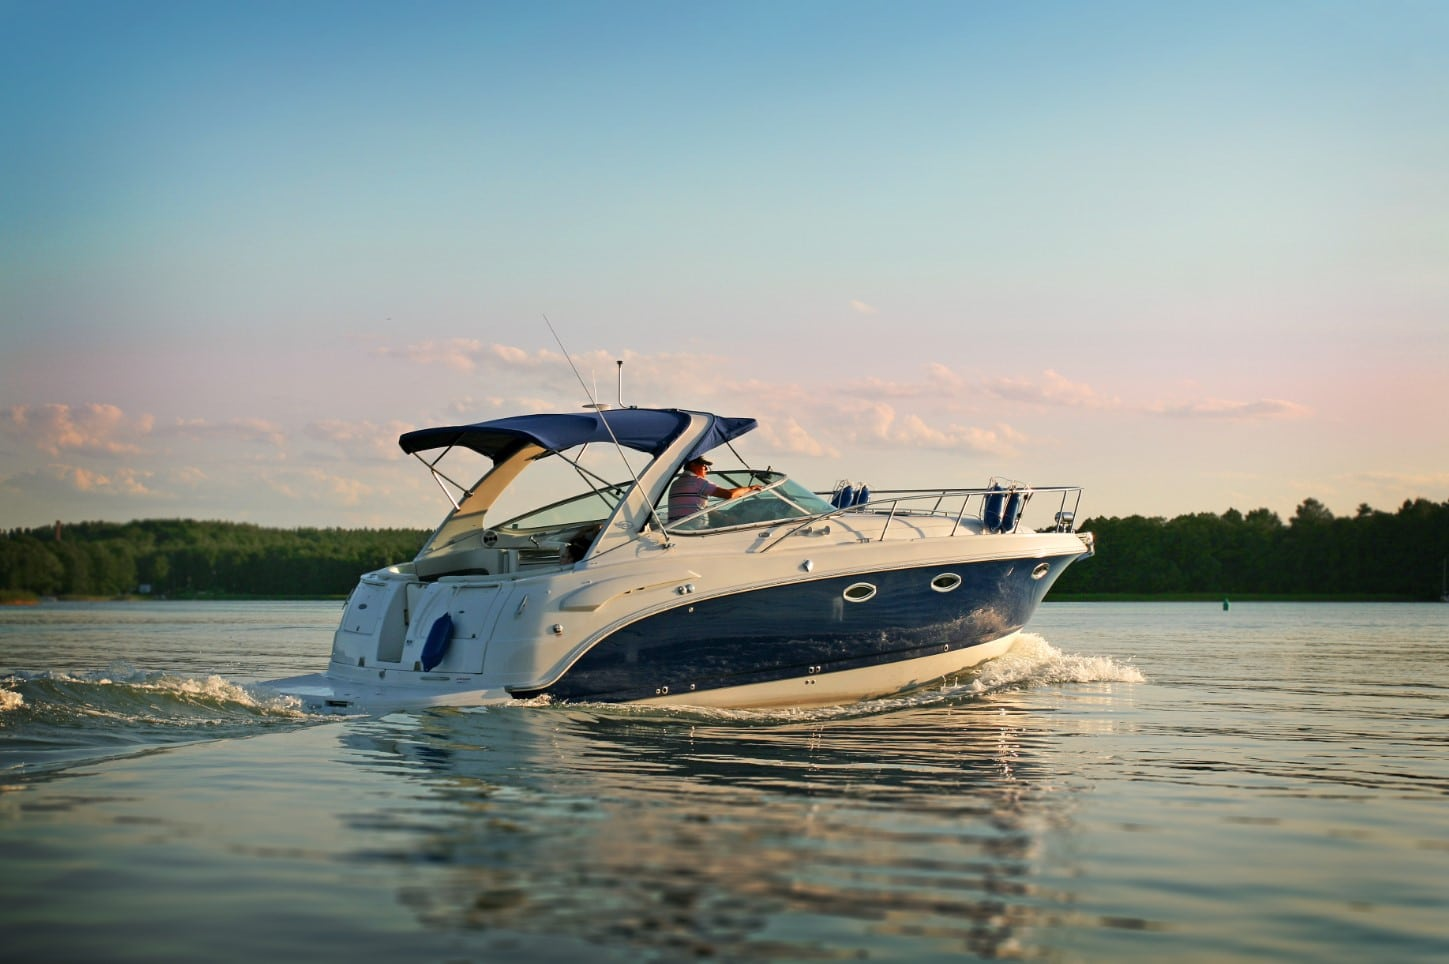 What You Need to Know About Insuring Your Boat